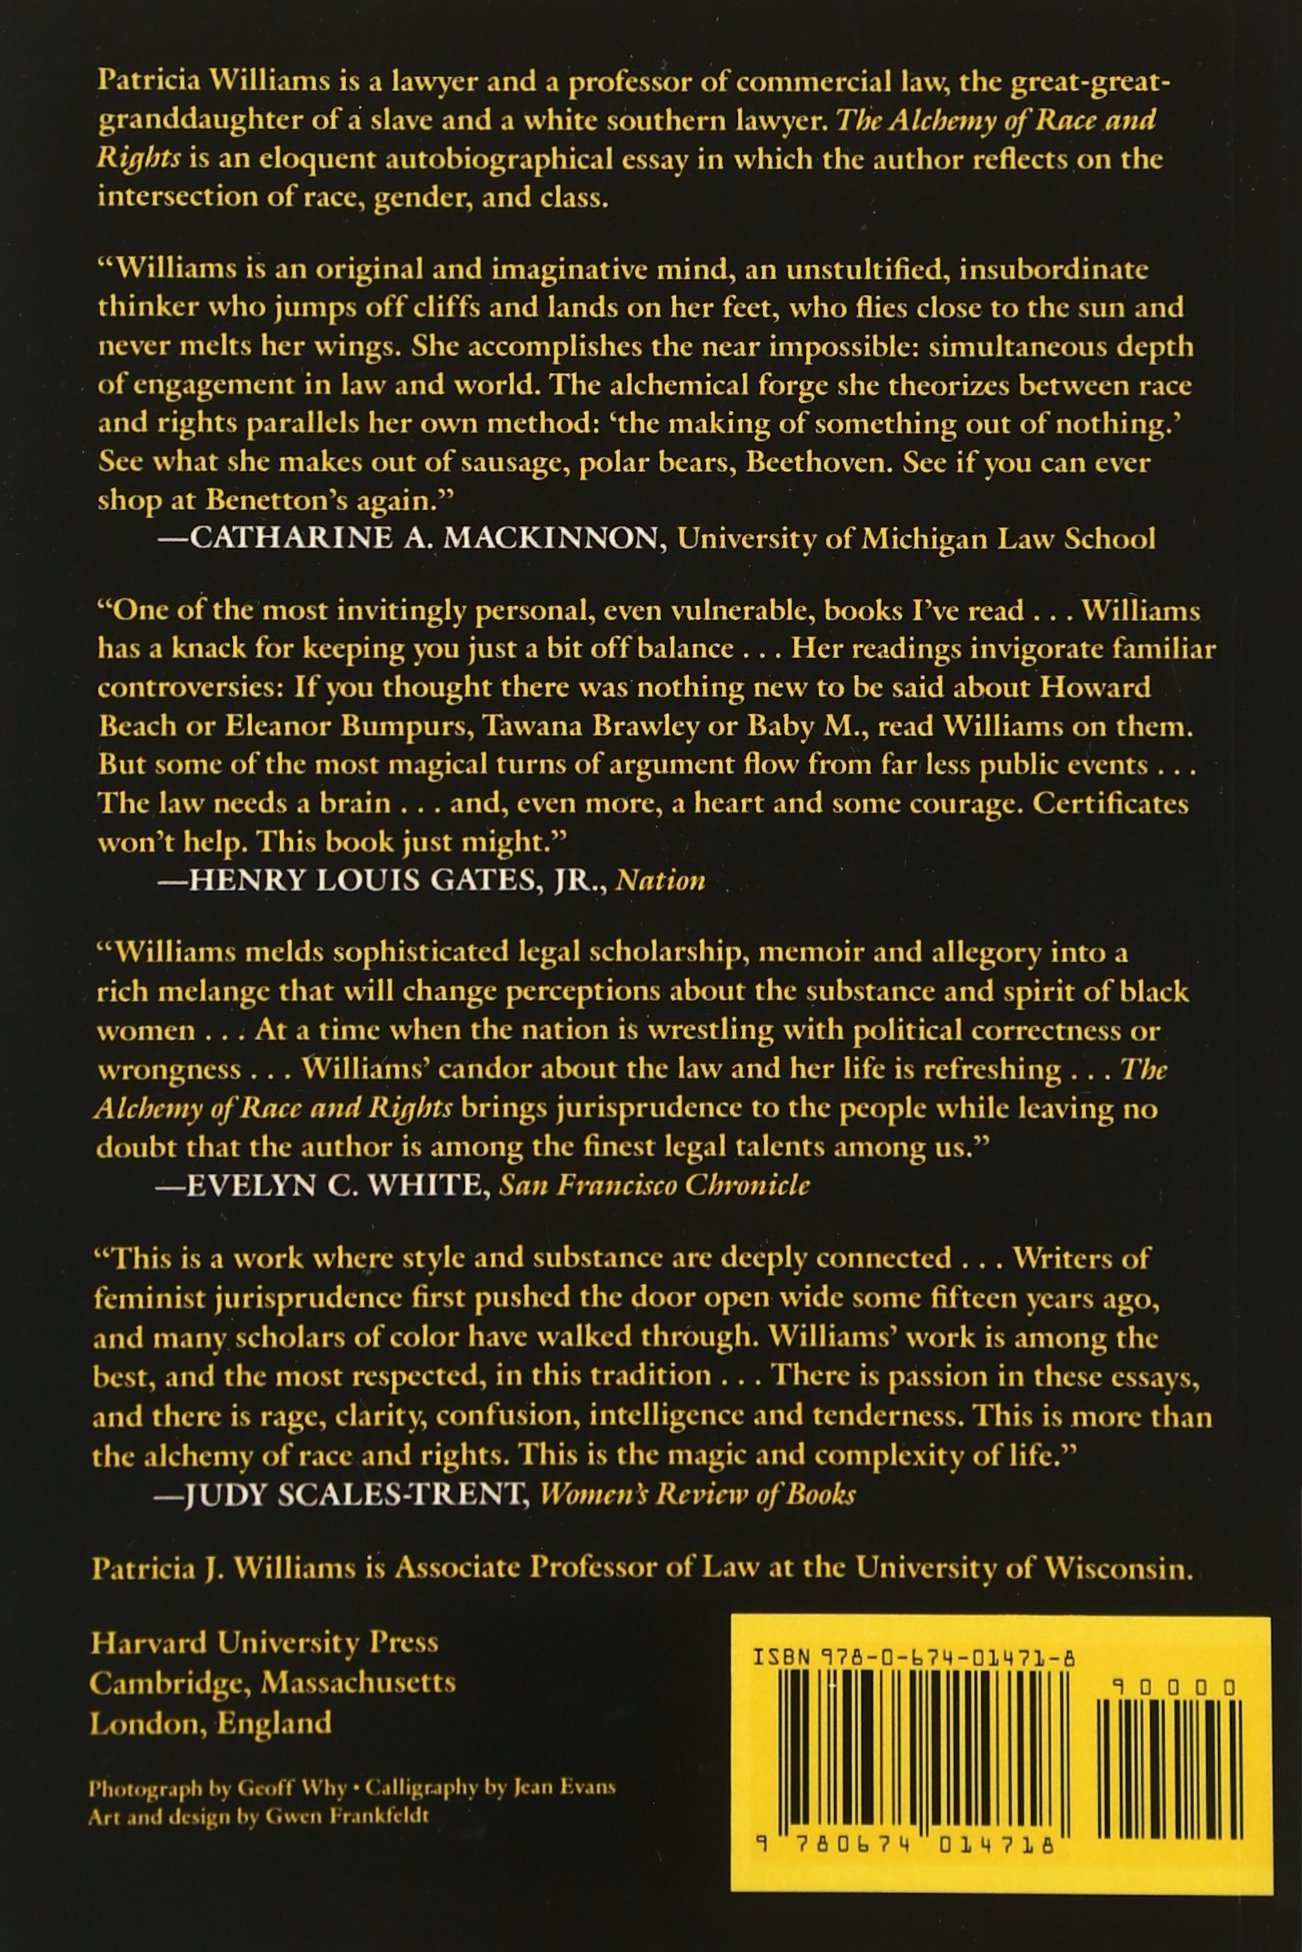 the alchemy of race and rights patricia j williams the alchemy of race and rights patricia j williams 9780674014718 books ca